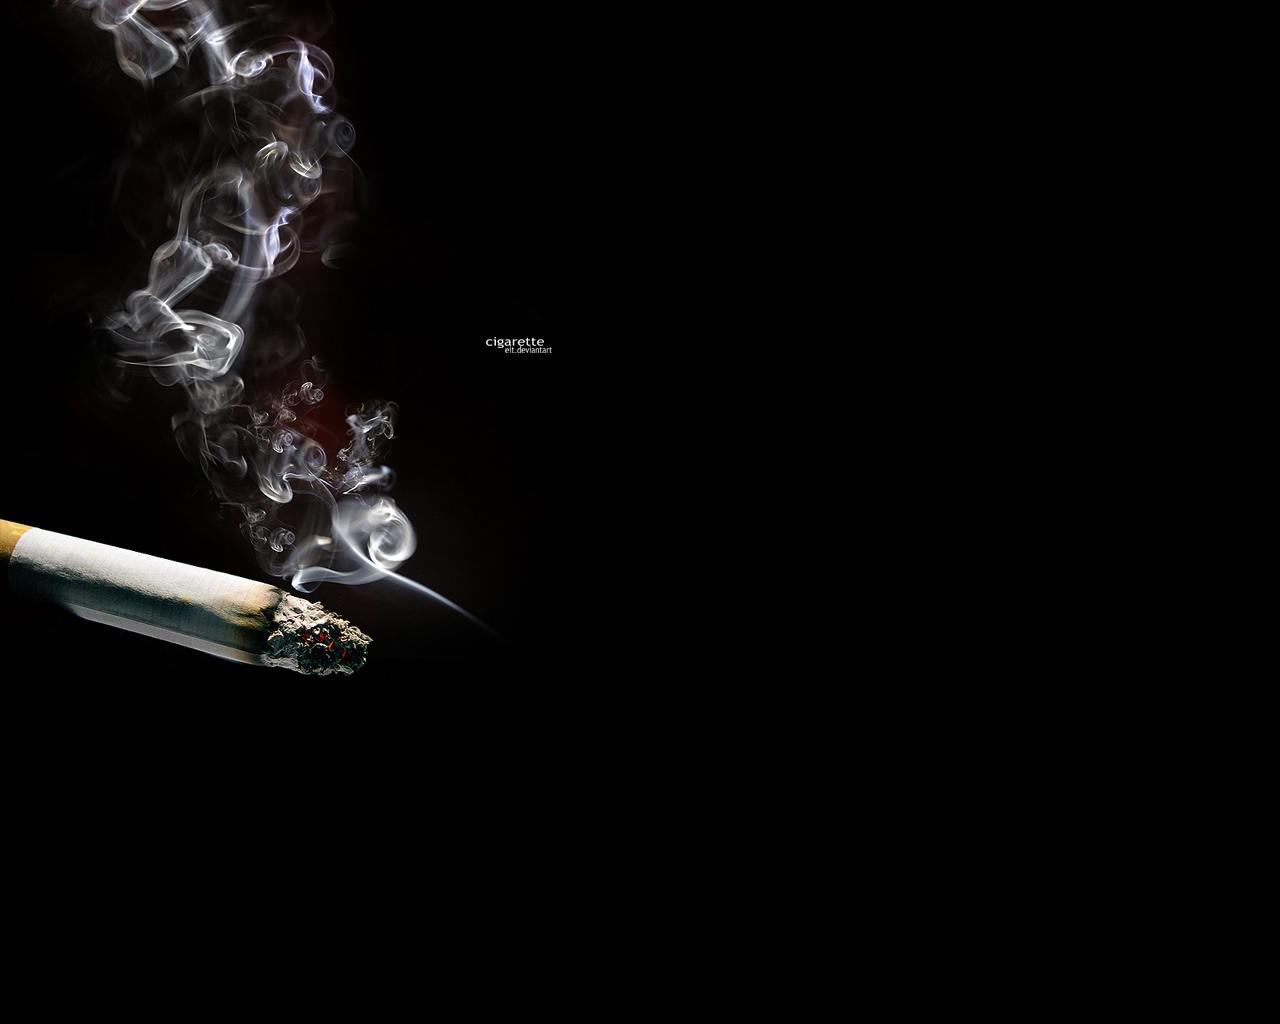 Cigarette Smoking Wallpapers Topix 1280x1024